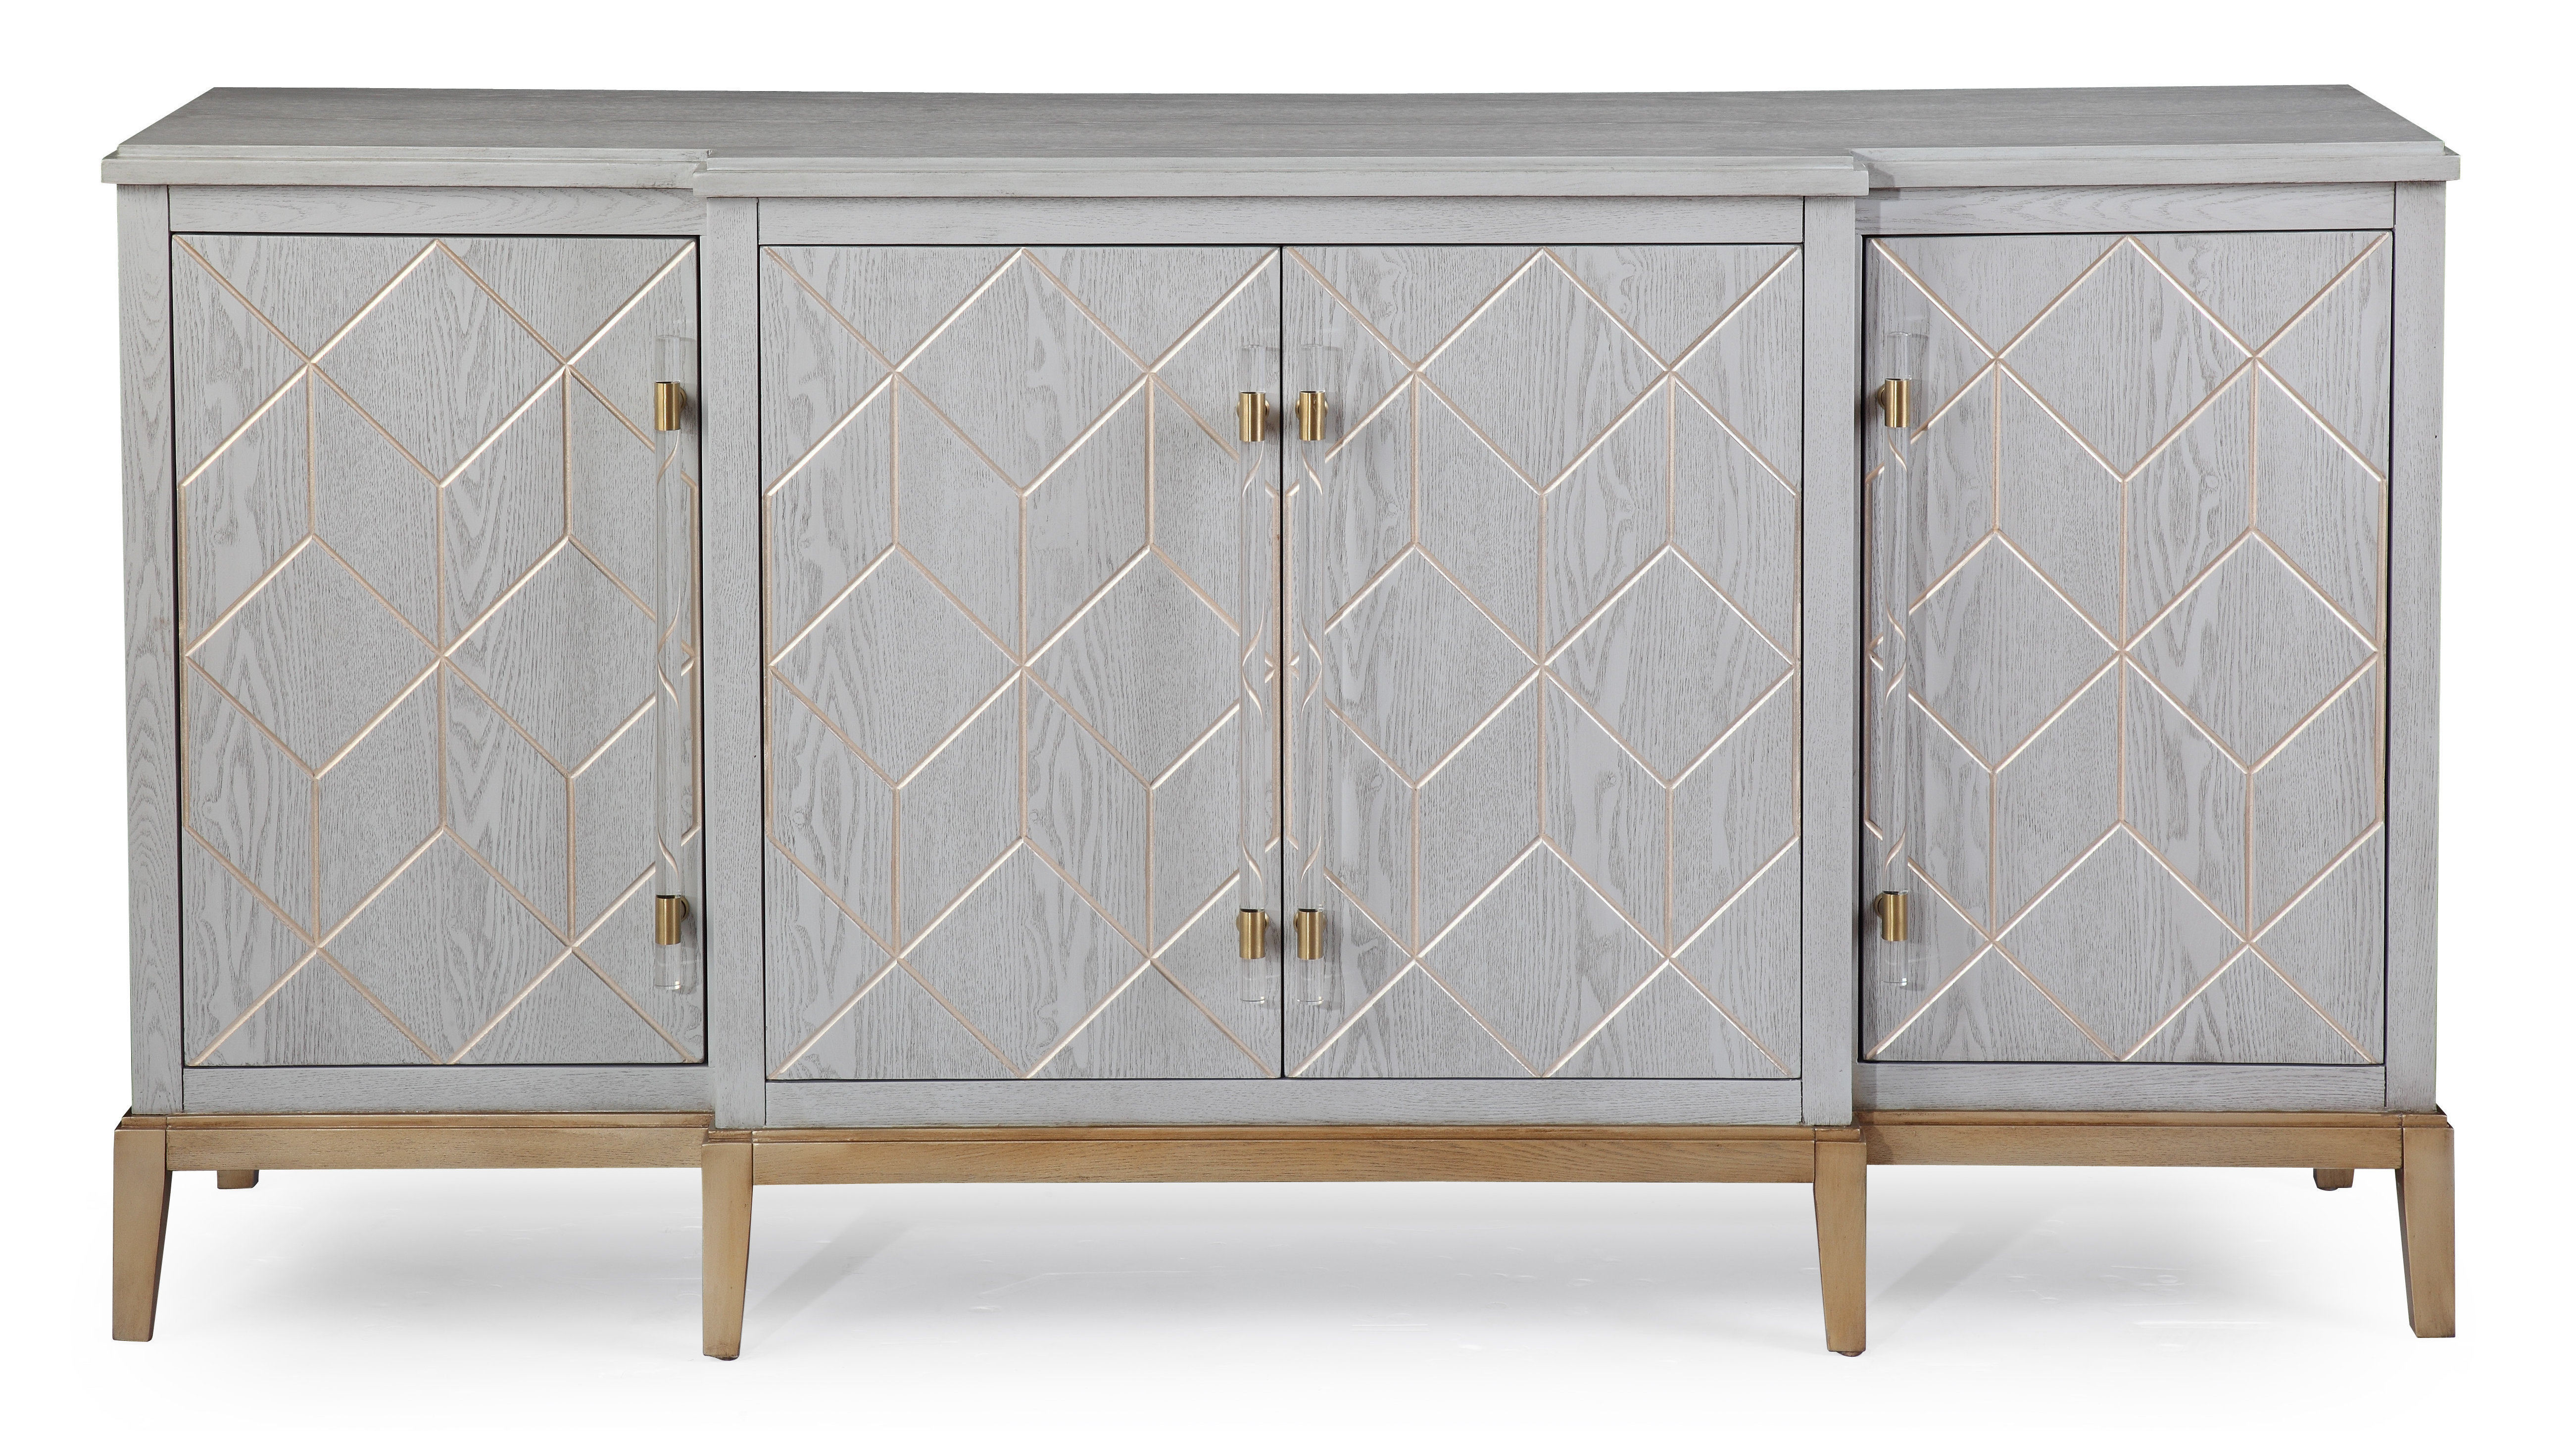 Cabinet Equipped Sideboards & Buffets | Joss & Main For Stillwater Sideboards (View 4 of 30)